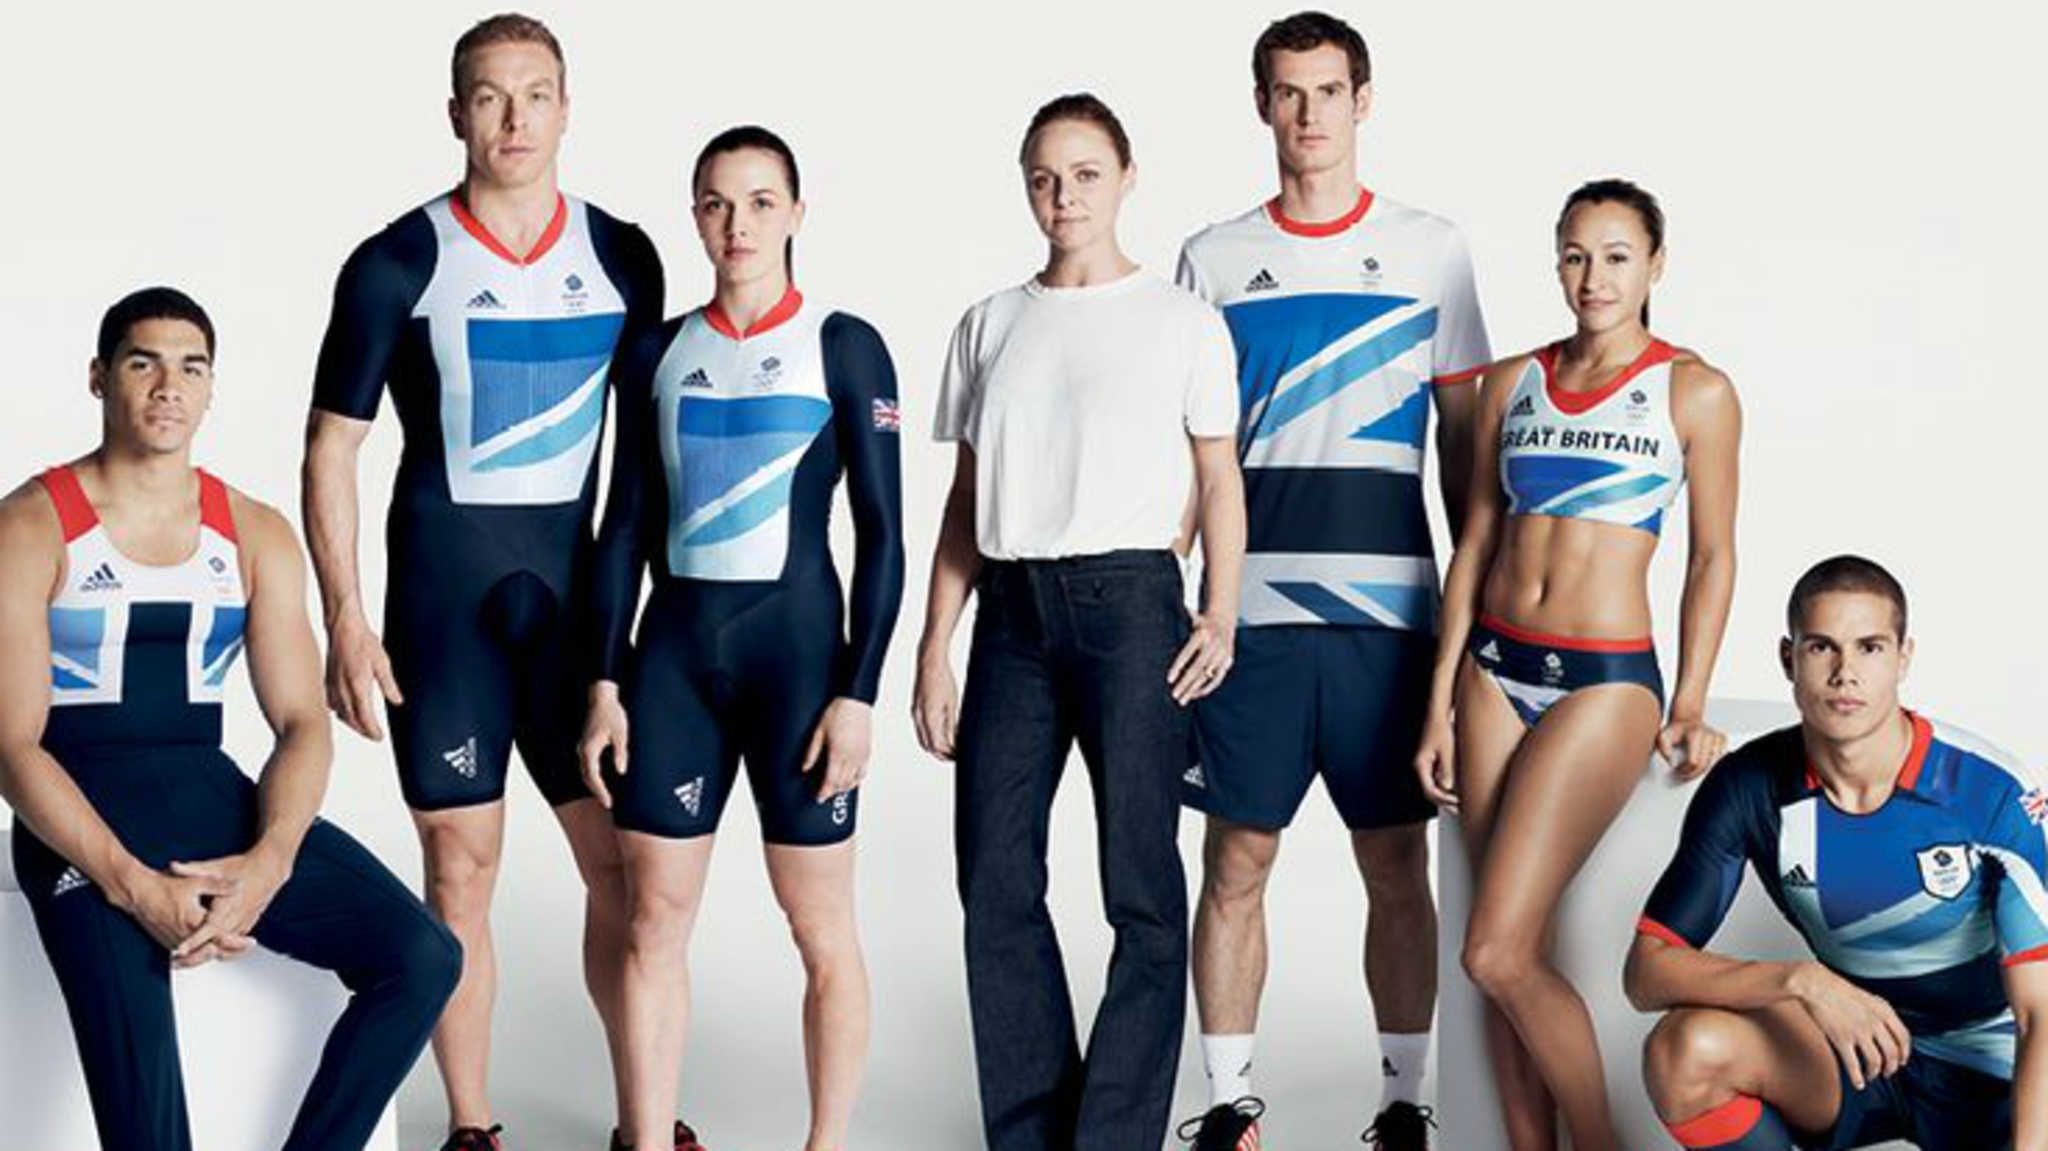 Stella McCartney Is Back With Adidas for the Rio 2016 Olympics. The famed  British designer